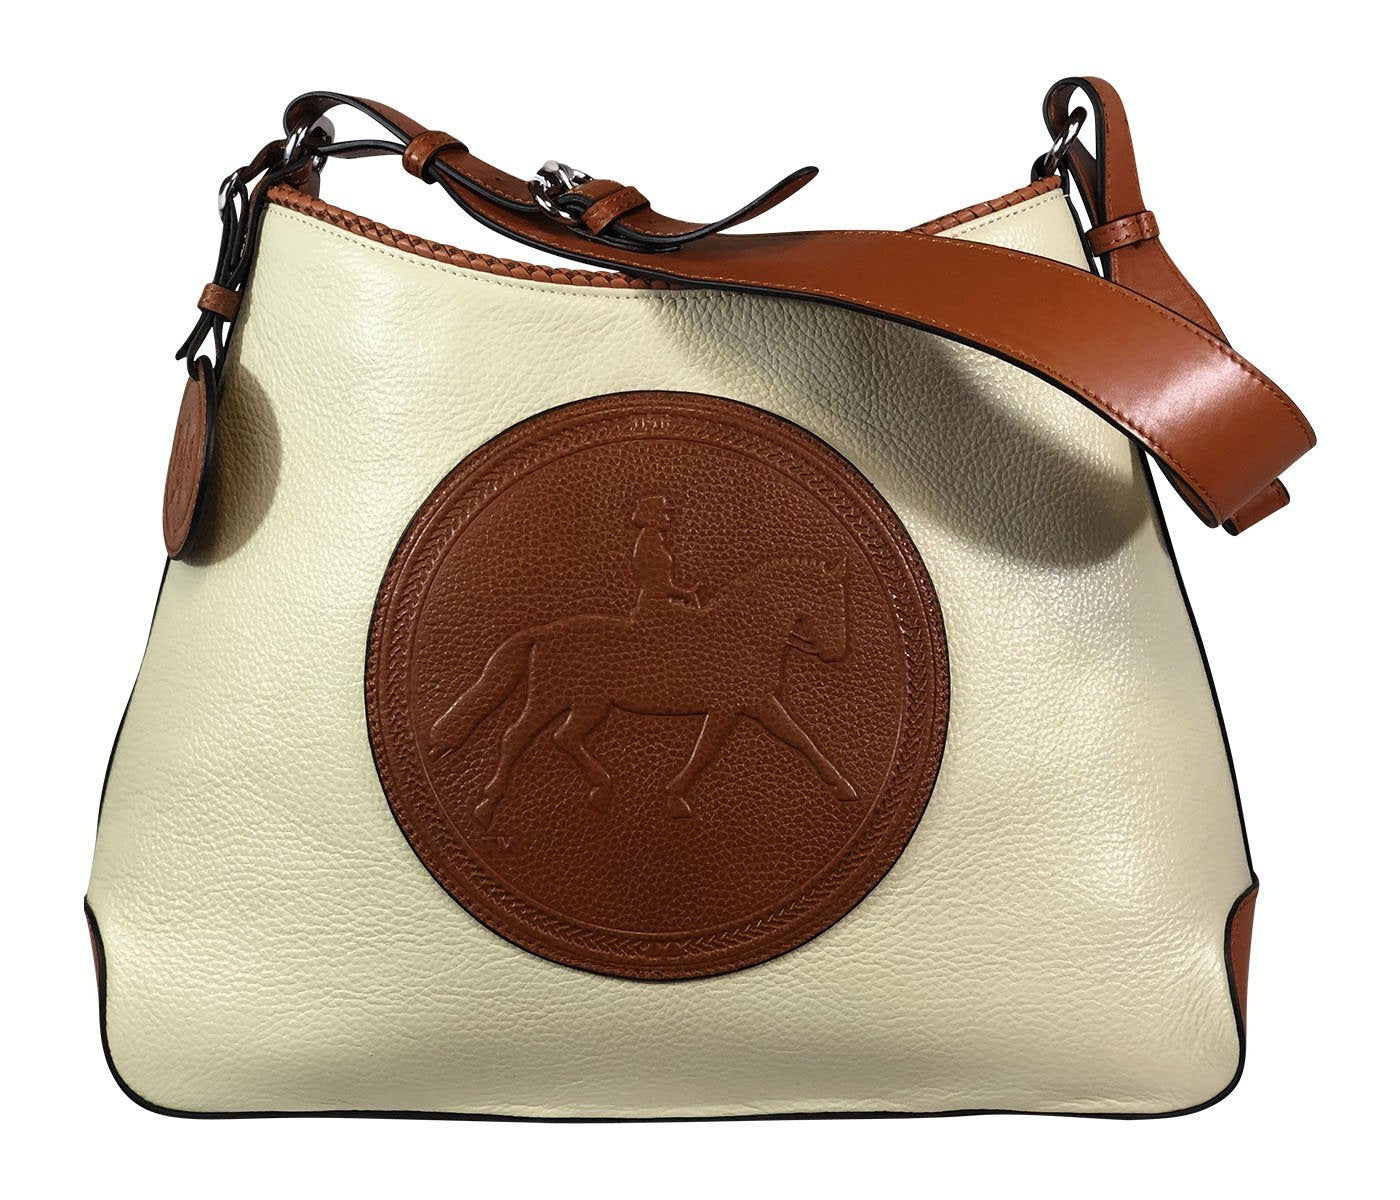 Tucker Tweed Leather Handbags Ivory/Chestnut / Dressage The Tweed Manor Tote: Dressage